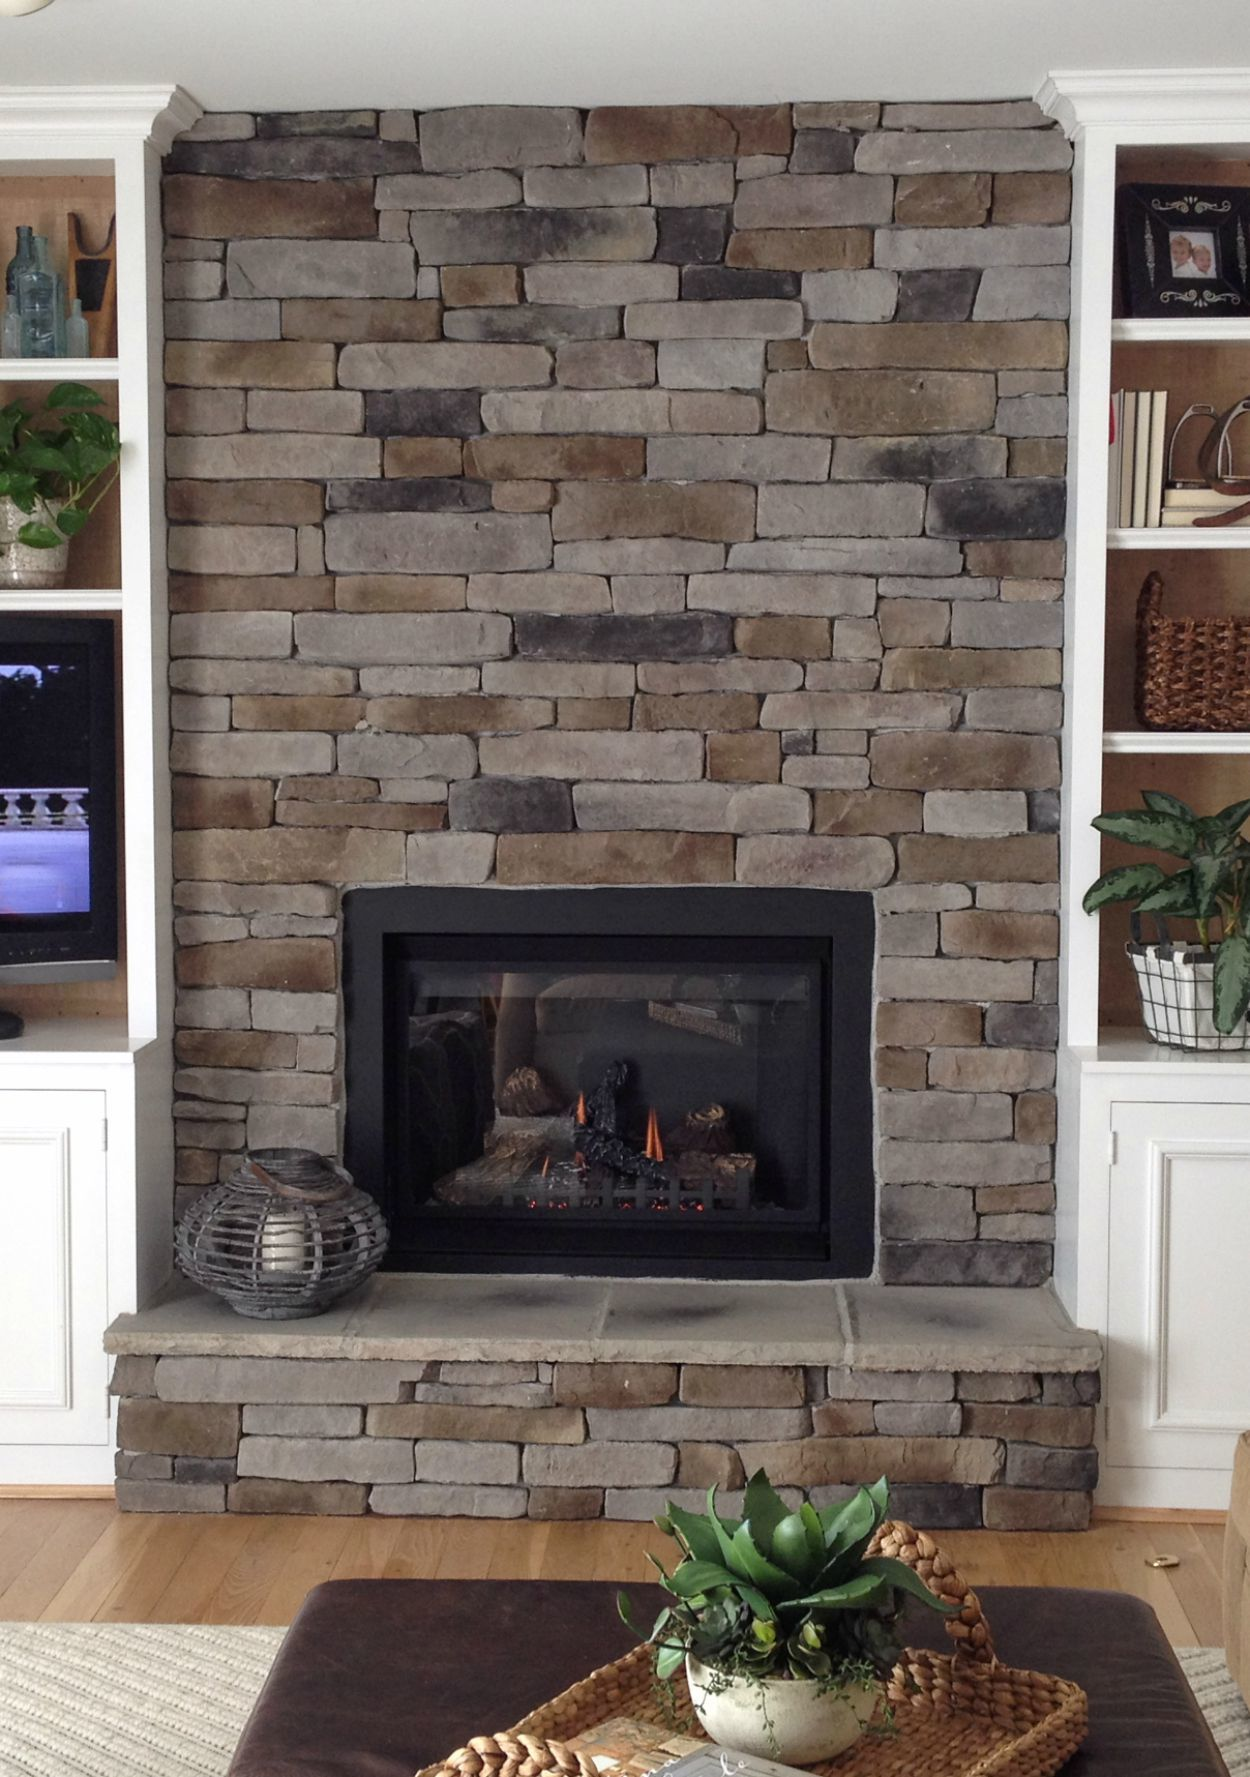 stone-veneer-fireplace-0915.jpg (skyword:188130)